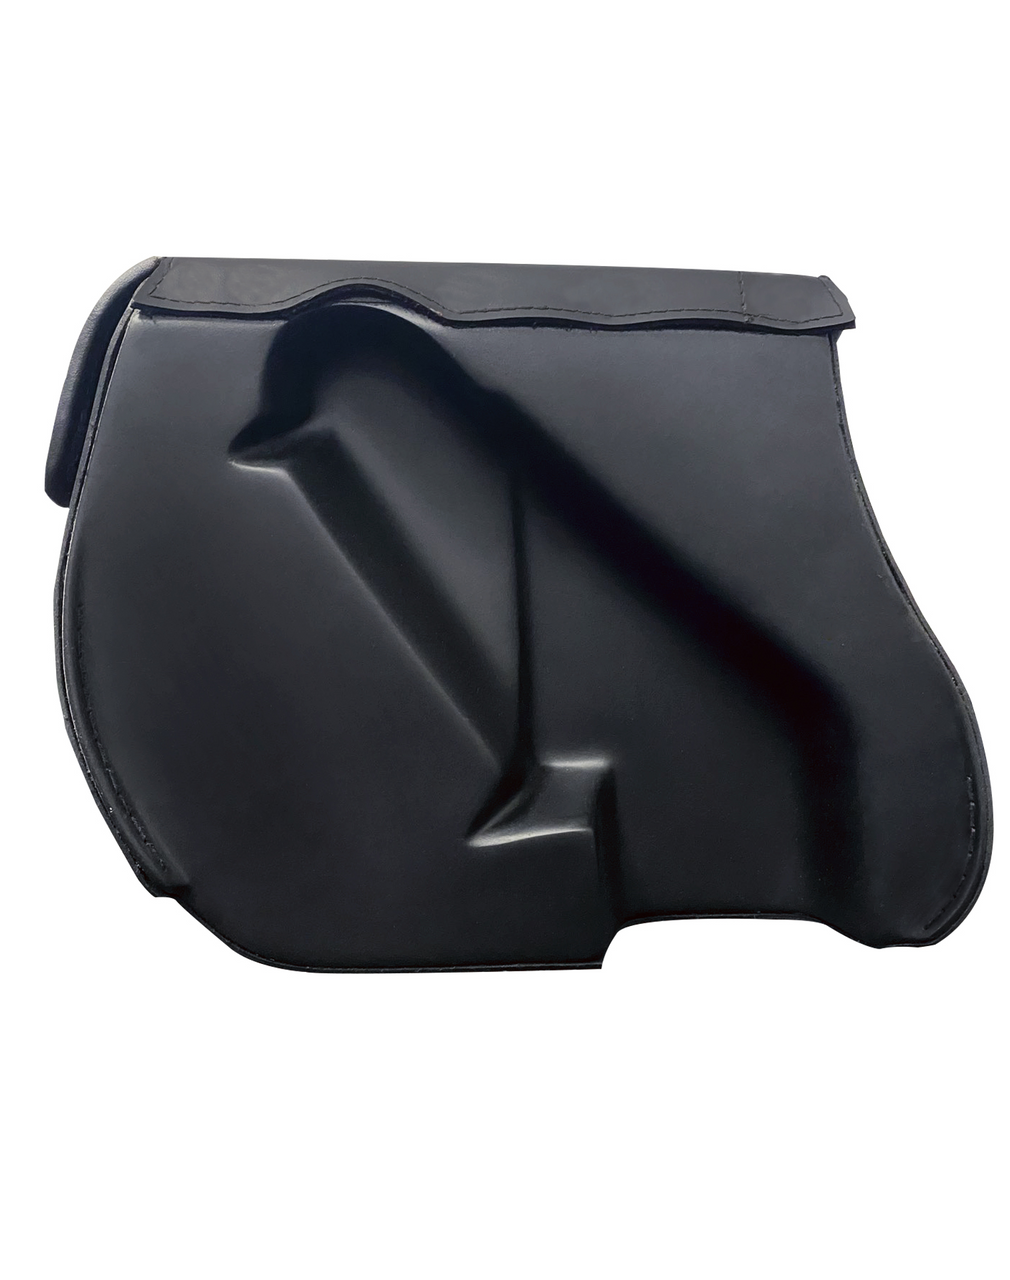 VikingBags Specific Medium Double Strap Shock Cutout Motorcycle Saddlebags For Harley Dyna Low Rider FXDL Shock Cutout View